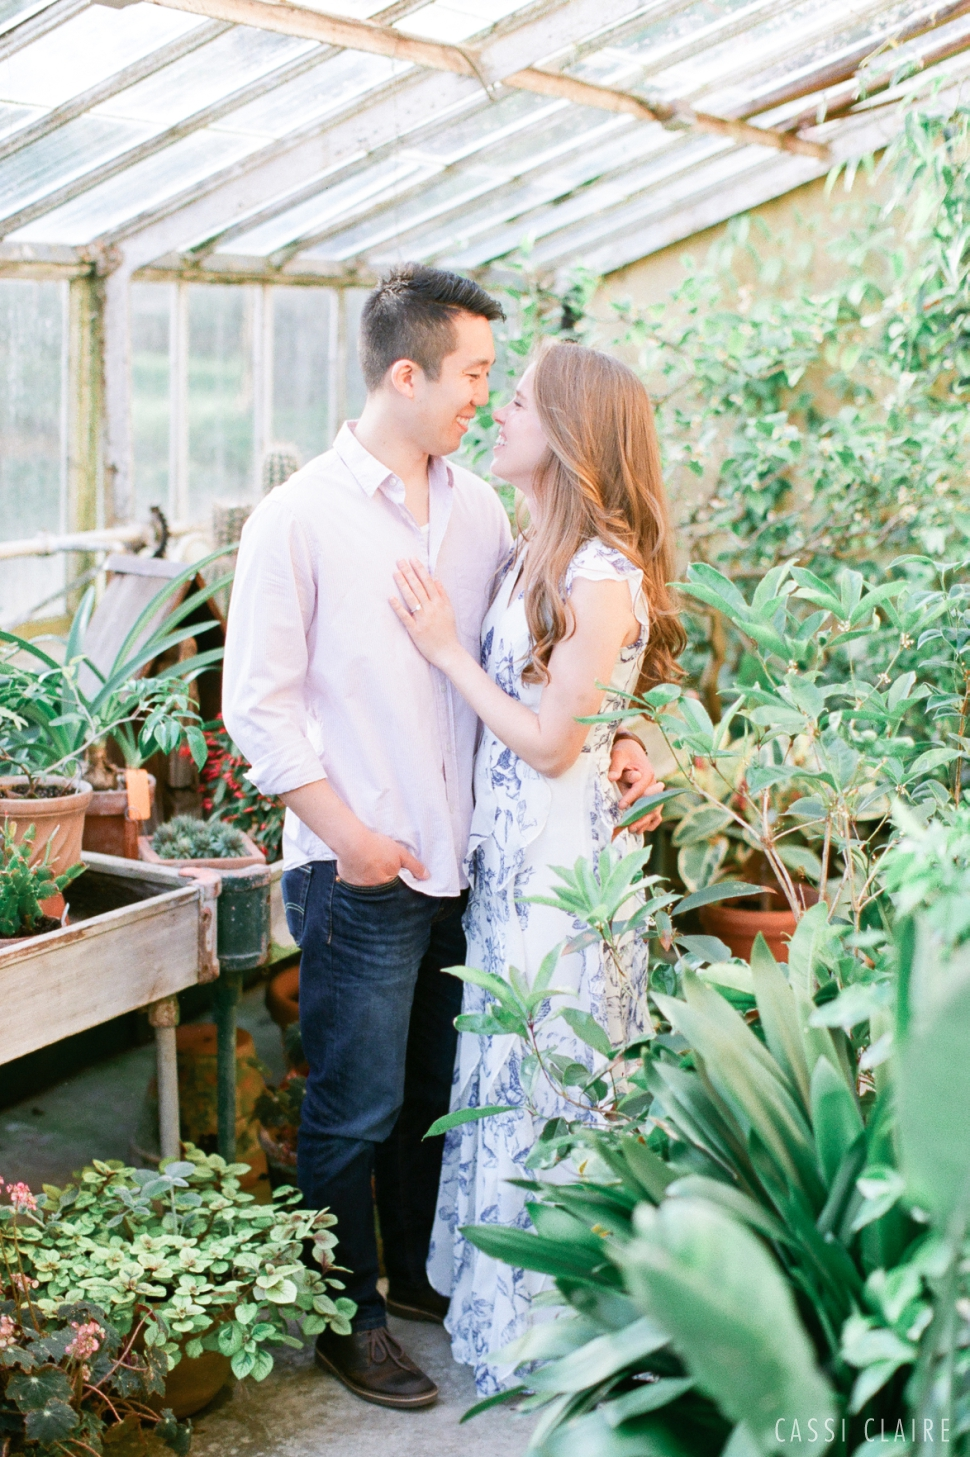 Willowwood-Arboretum-Engagement-Photos_15.jpg